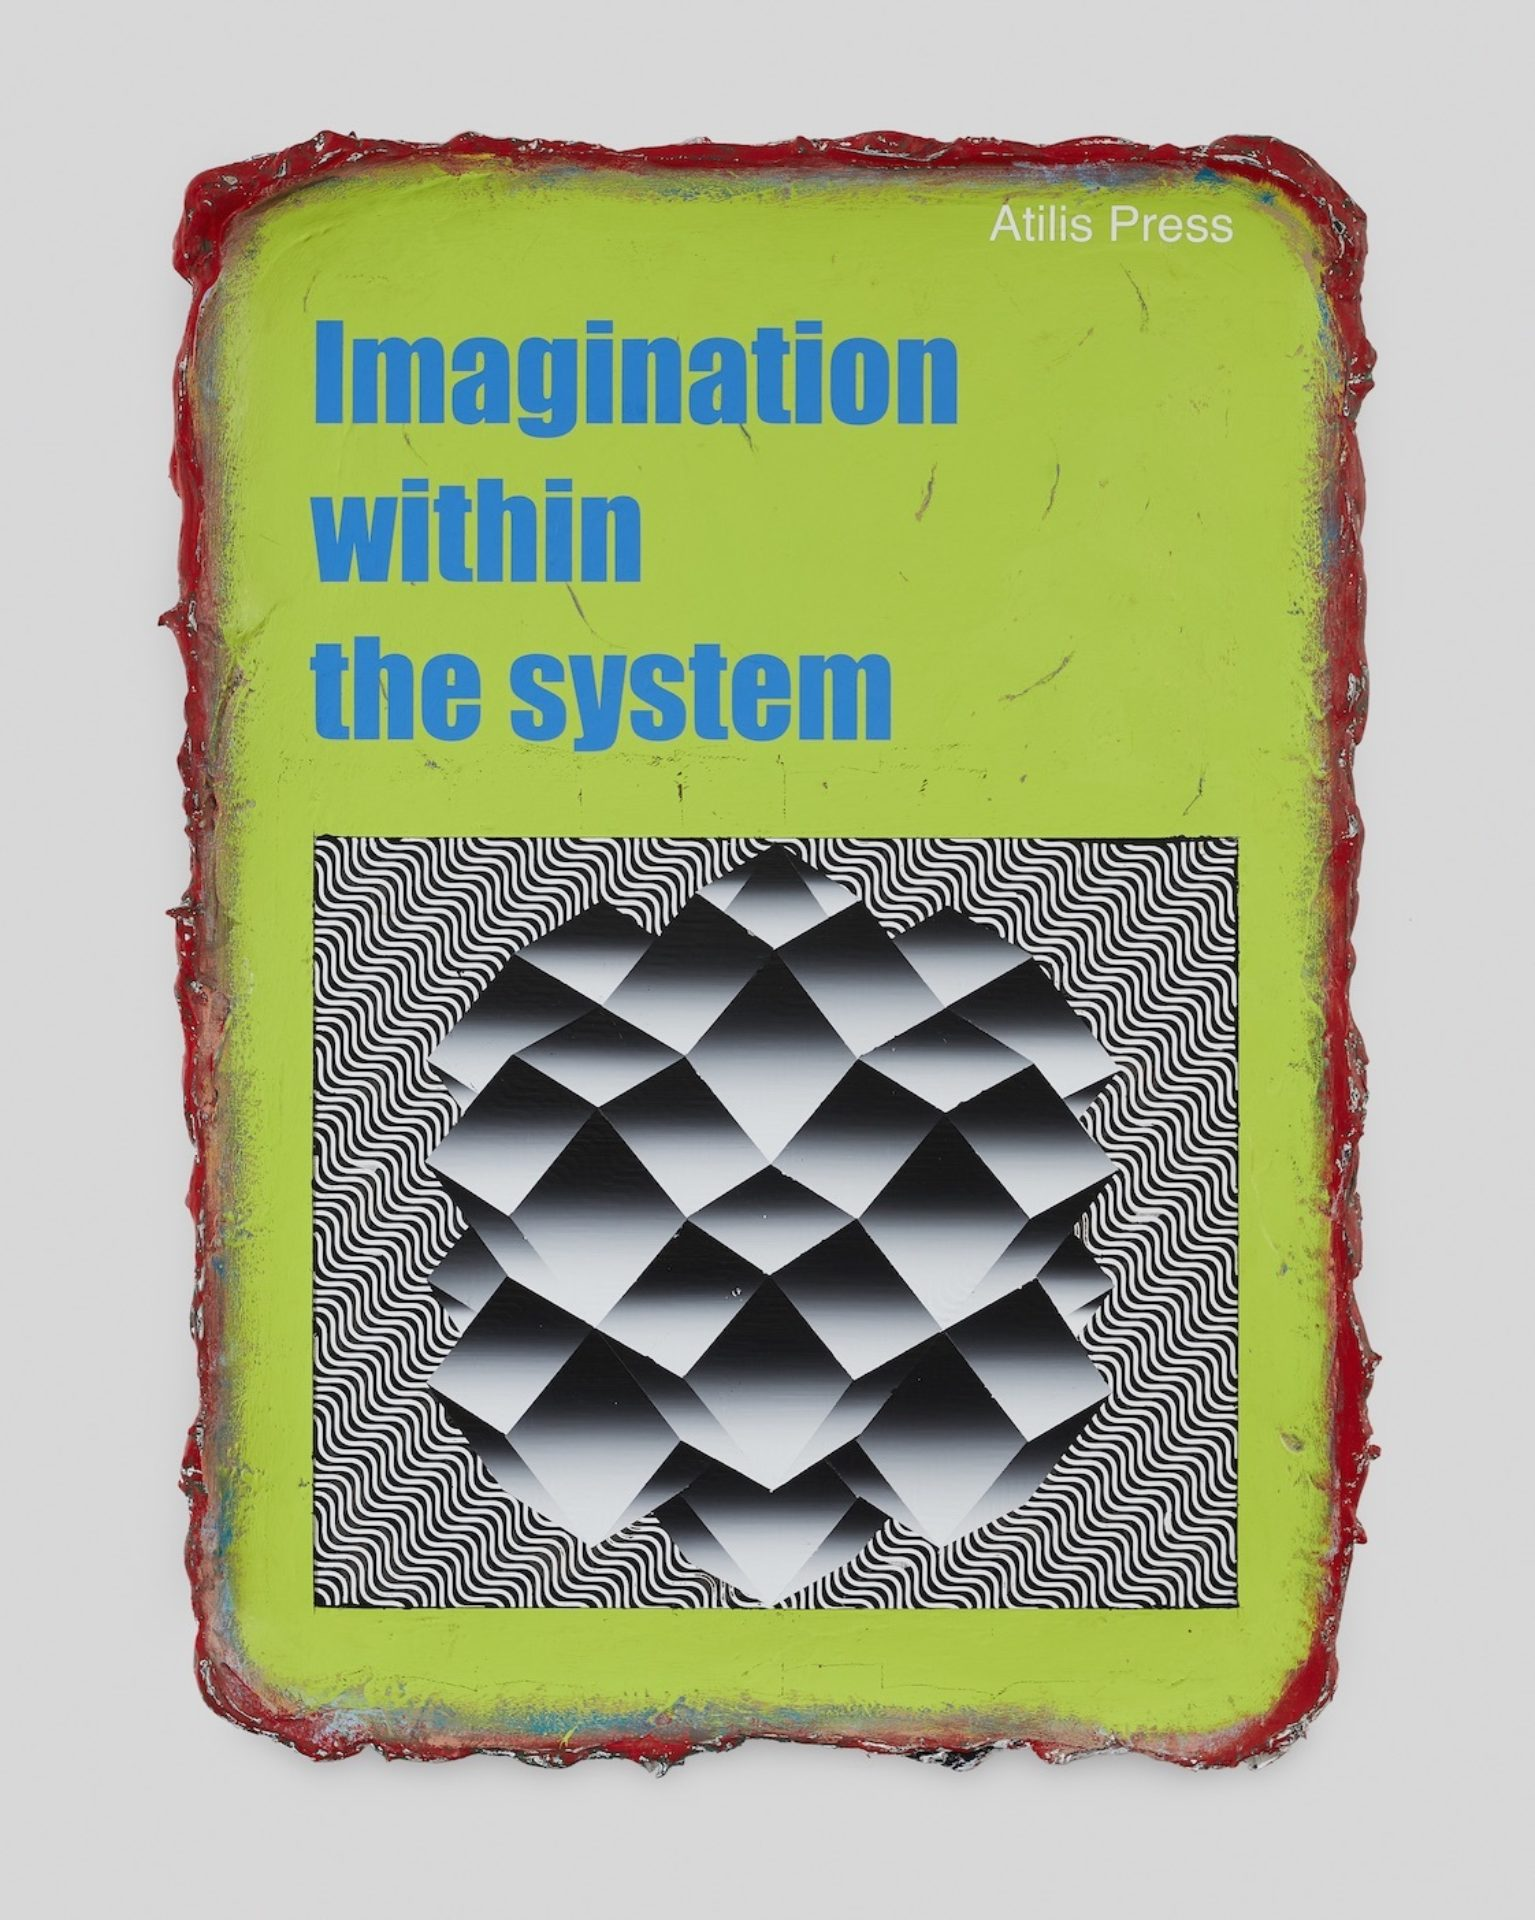 Vladmir Houdek, Imagination within the system, 2020